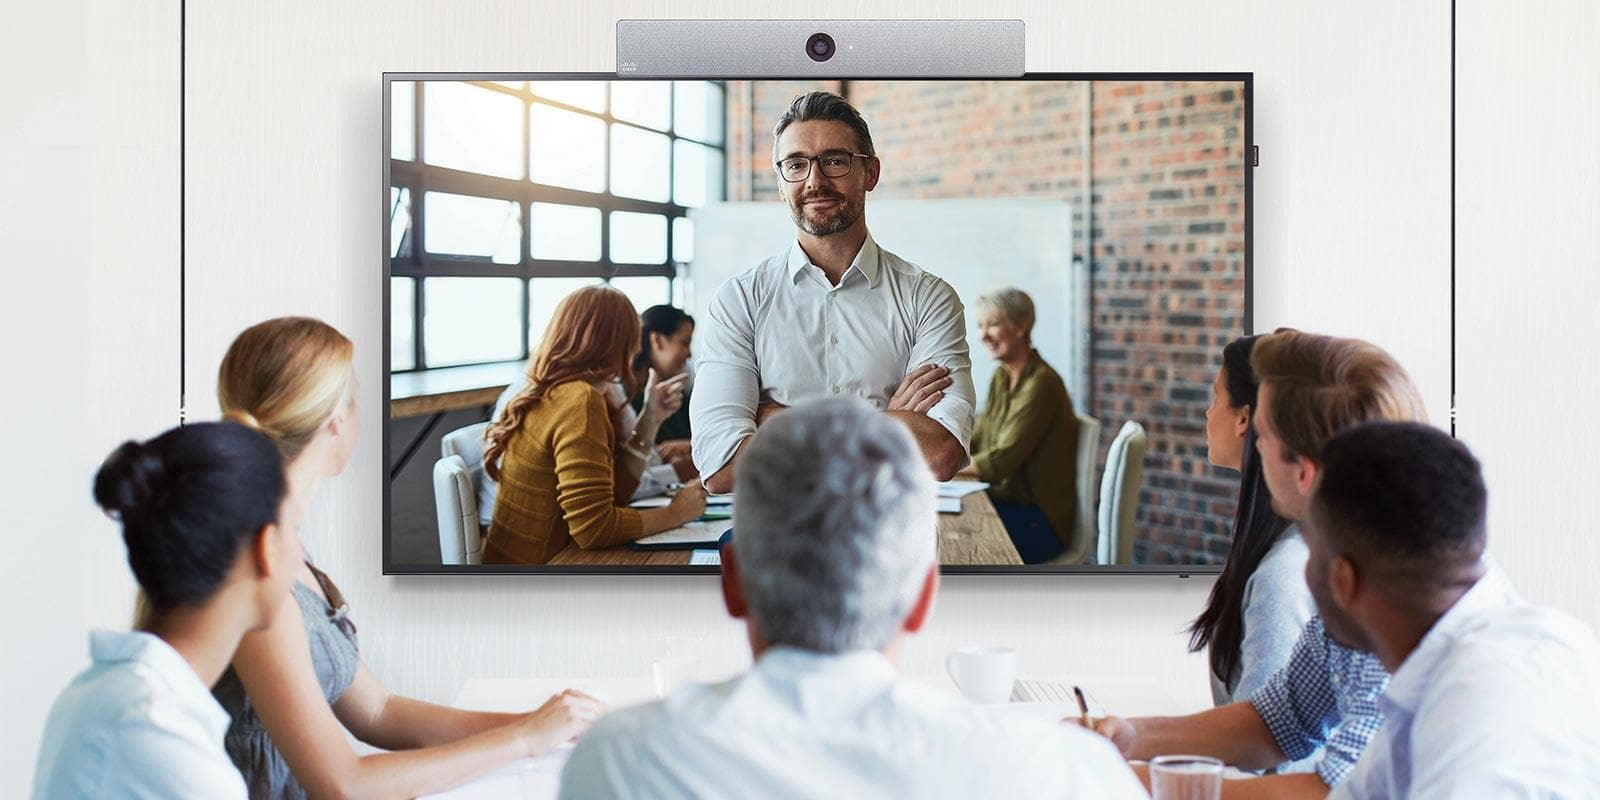 Samsung Professional Displays and Cisco Video Conferencing Solution